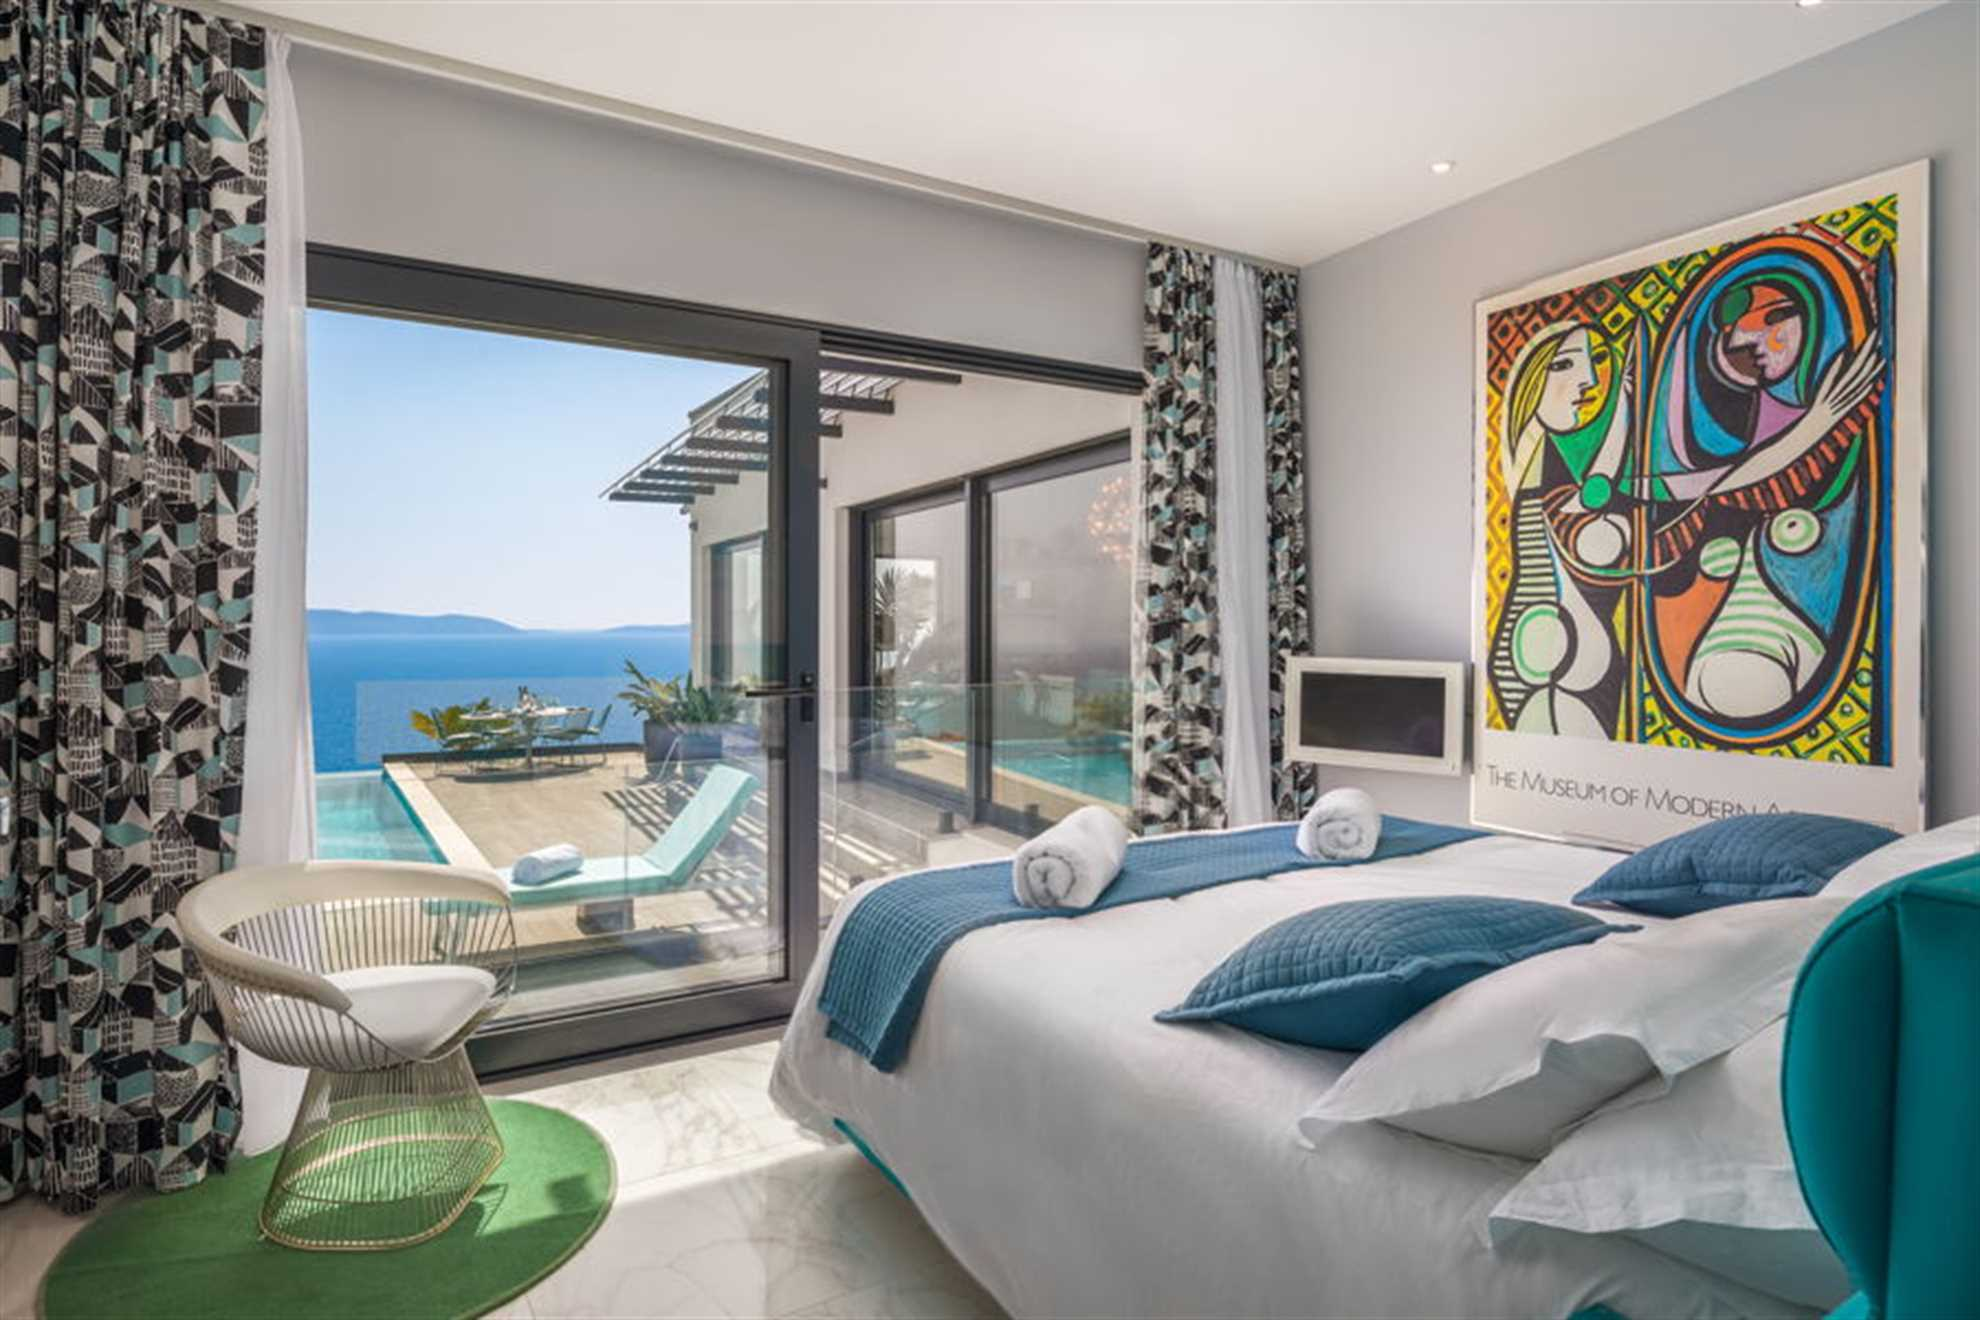 Bedroom near the pool terrace with sea view